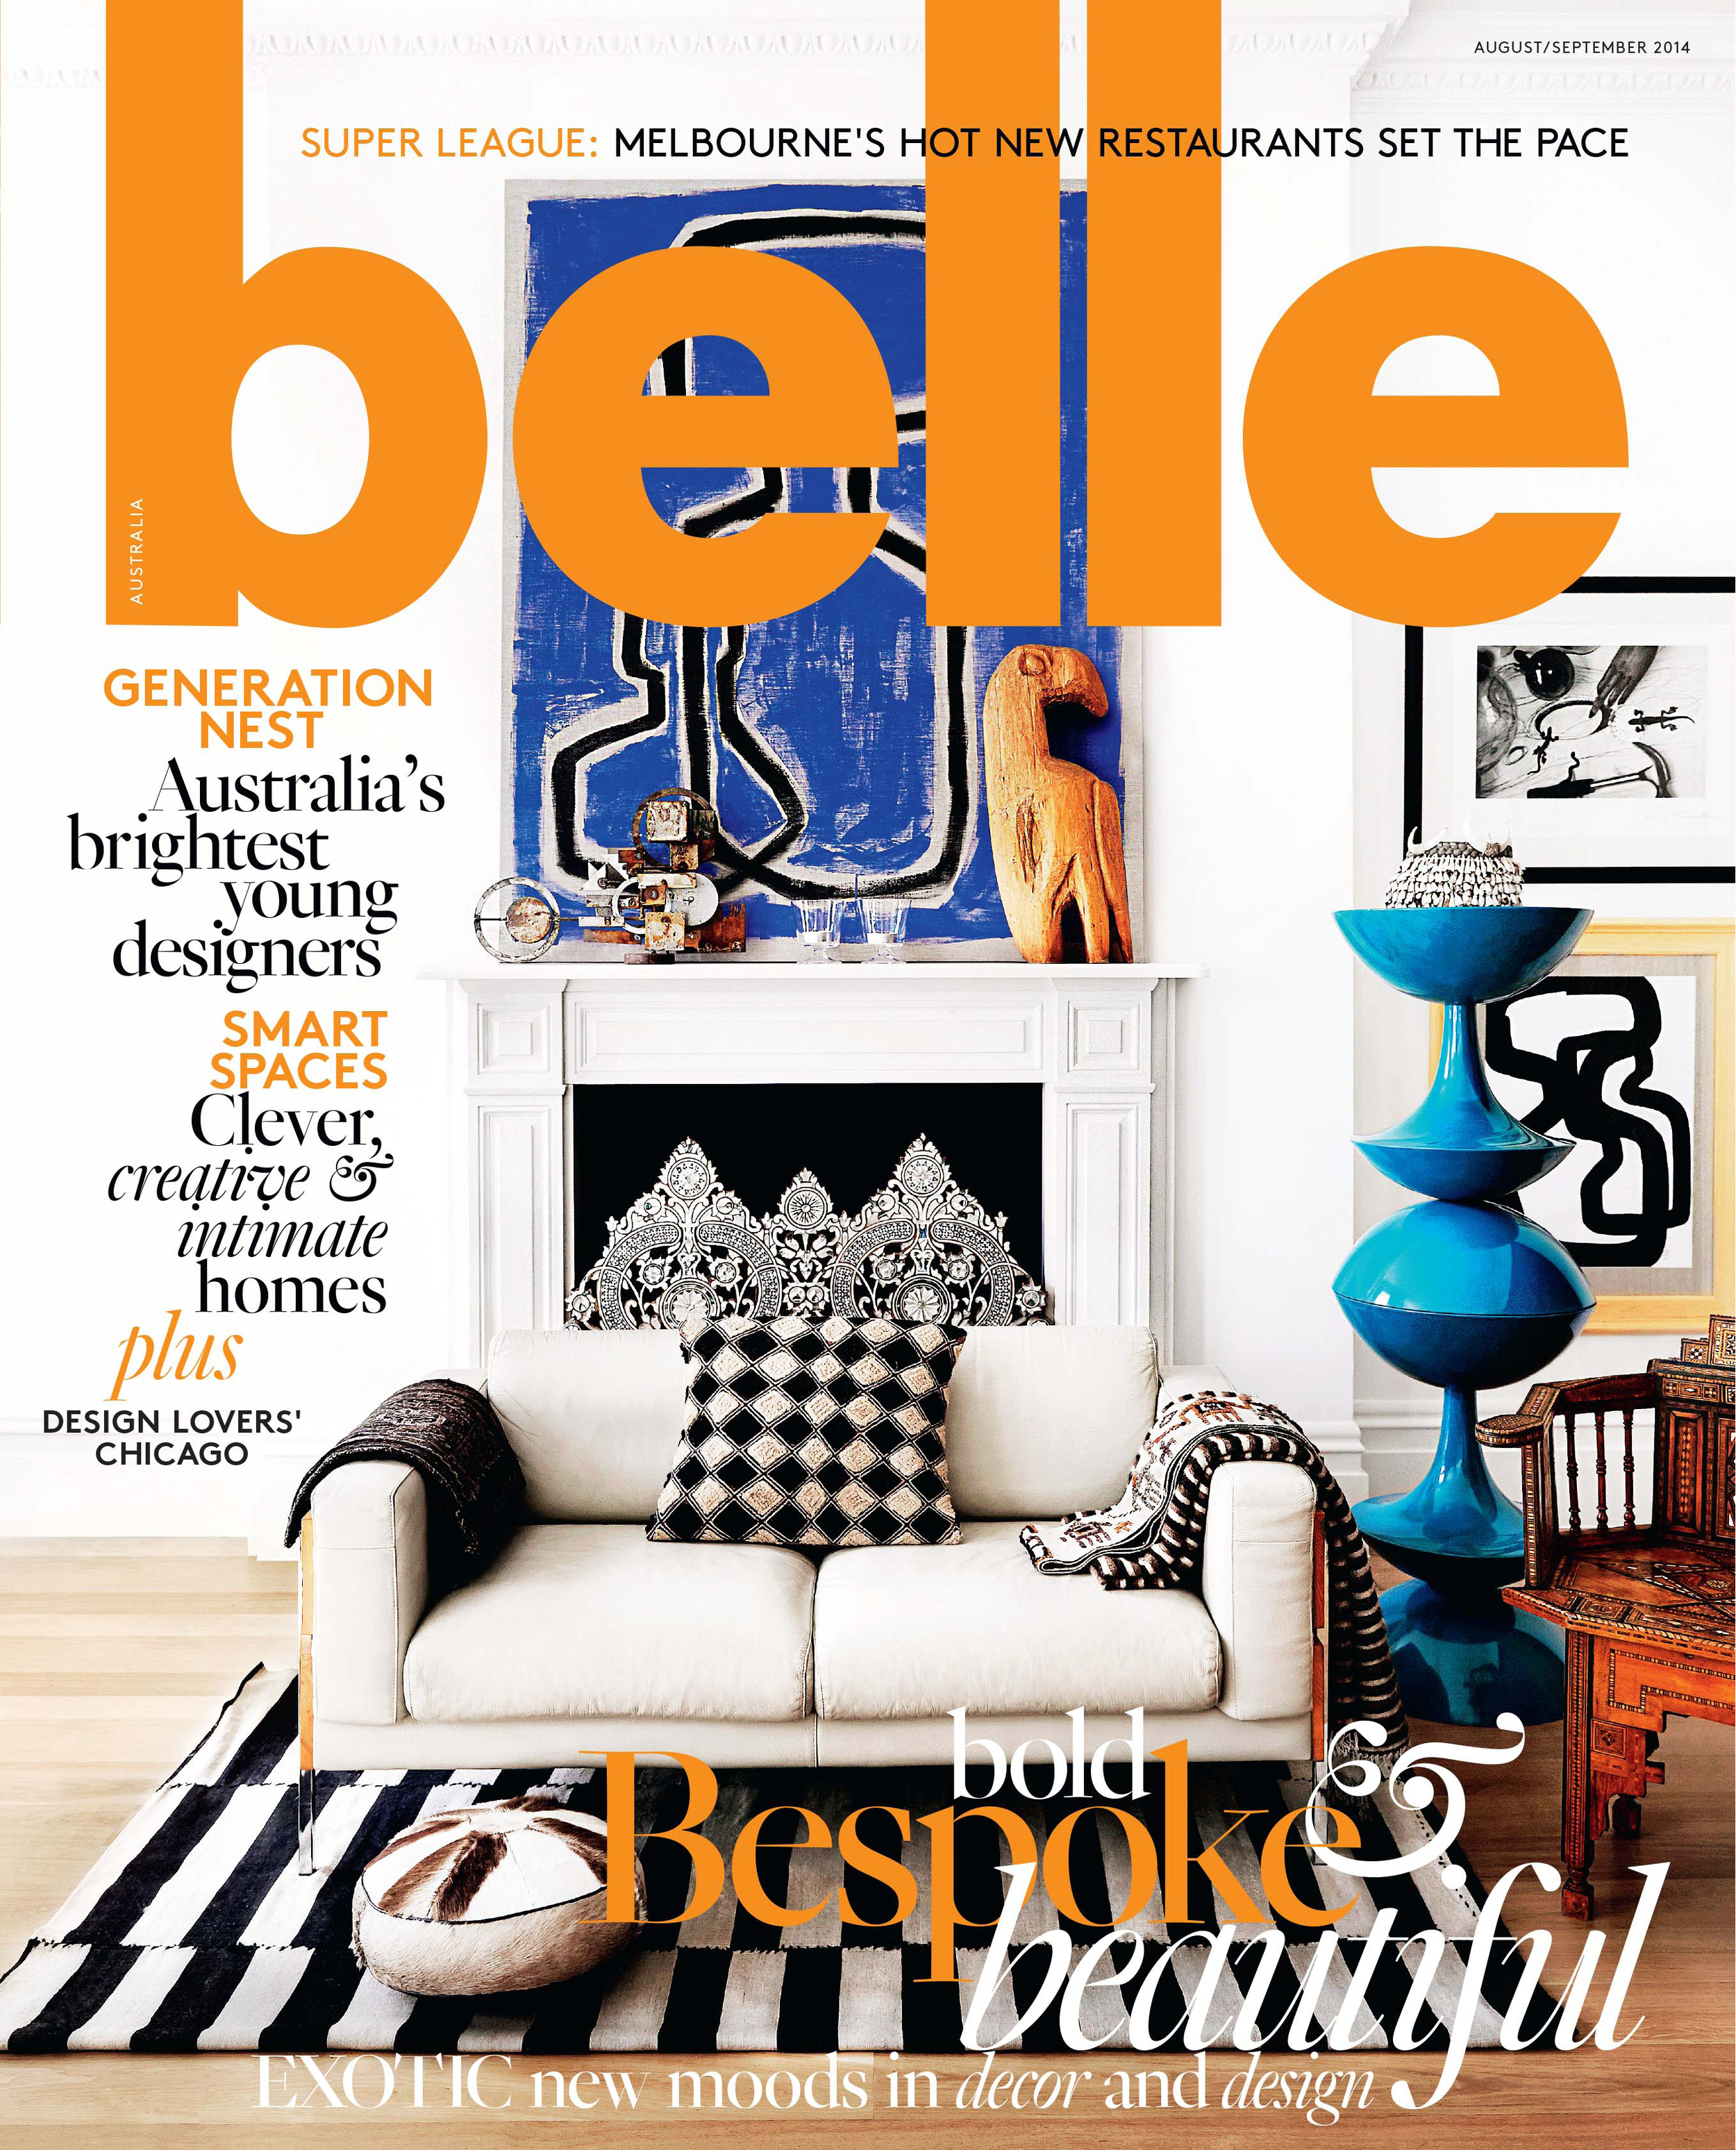 Belle Aug-Sept 2014_1.jpg